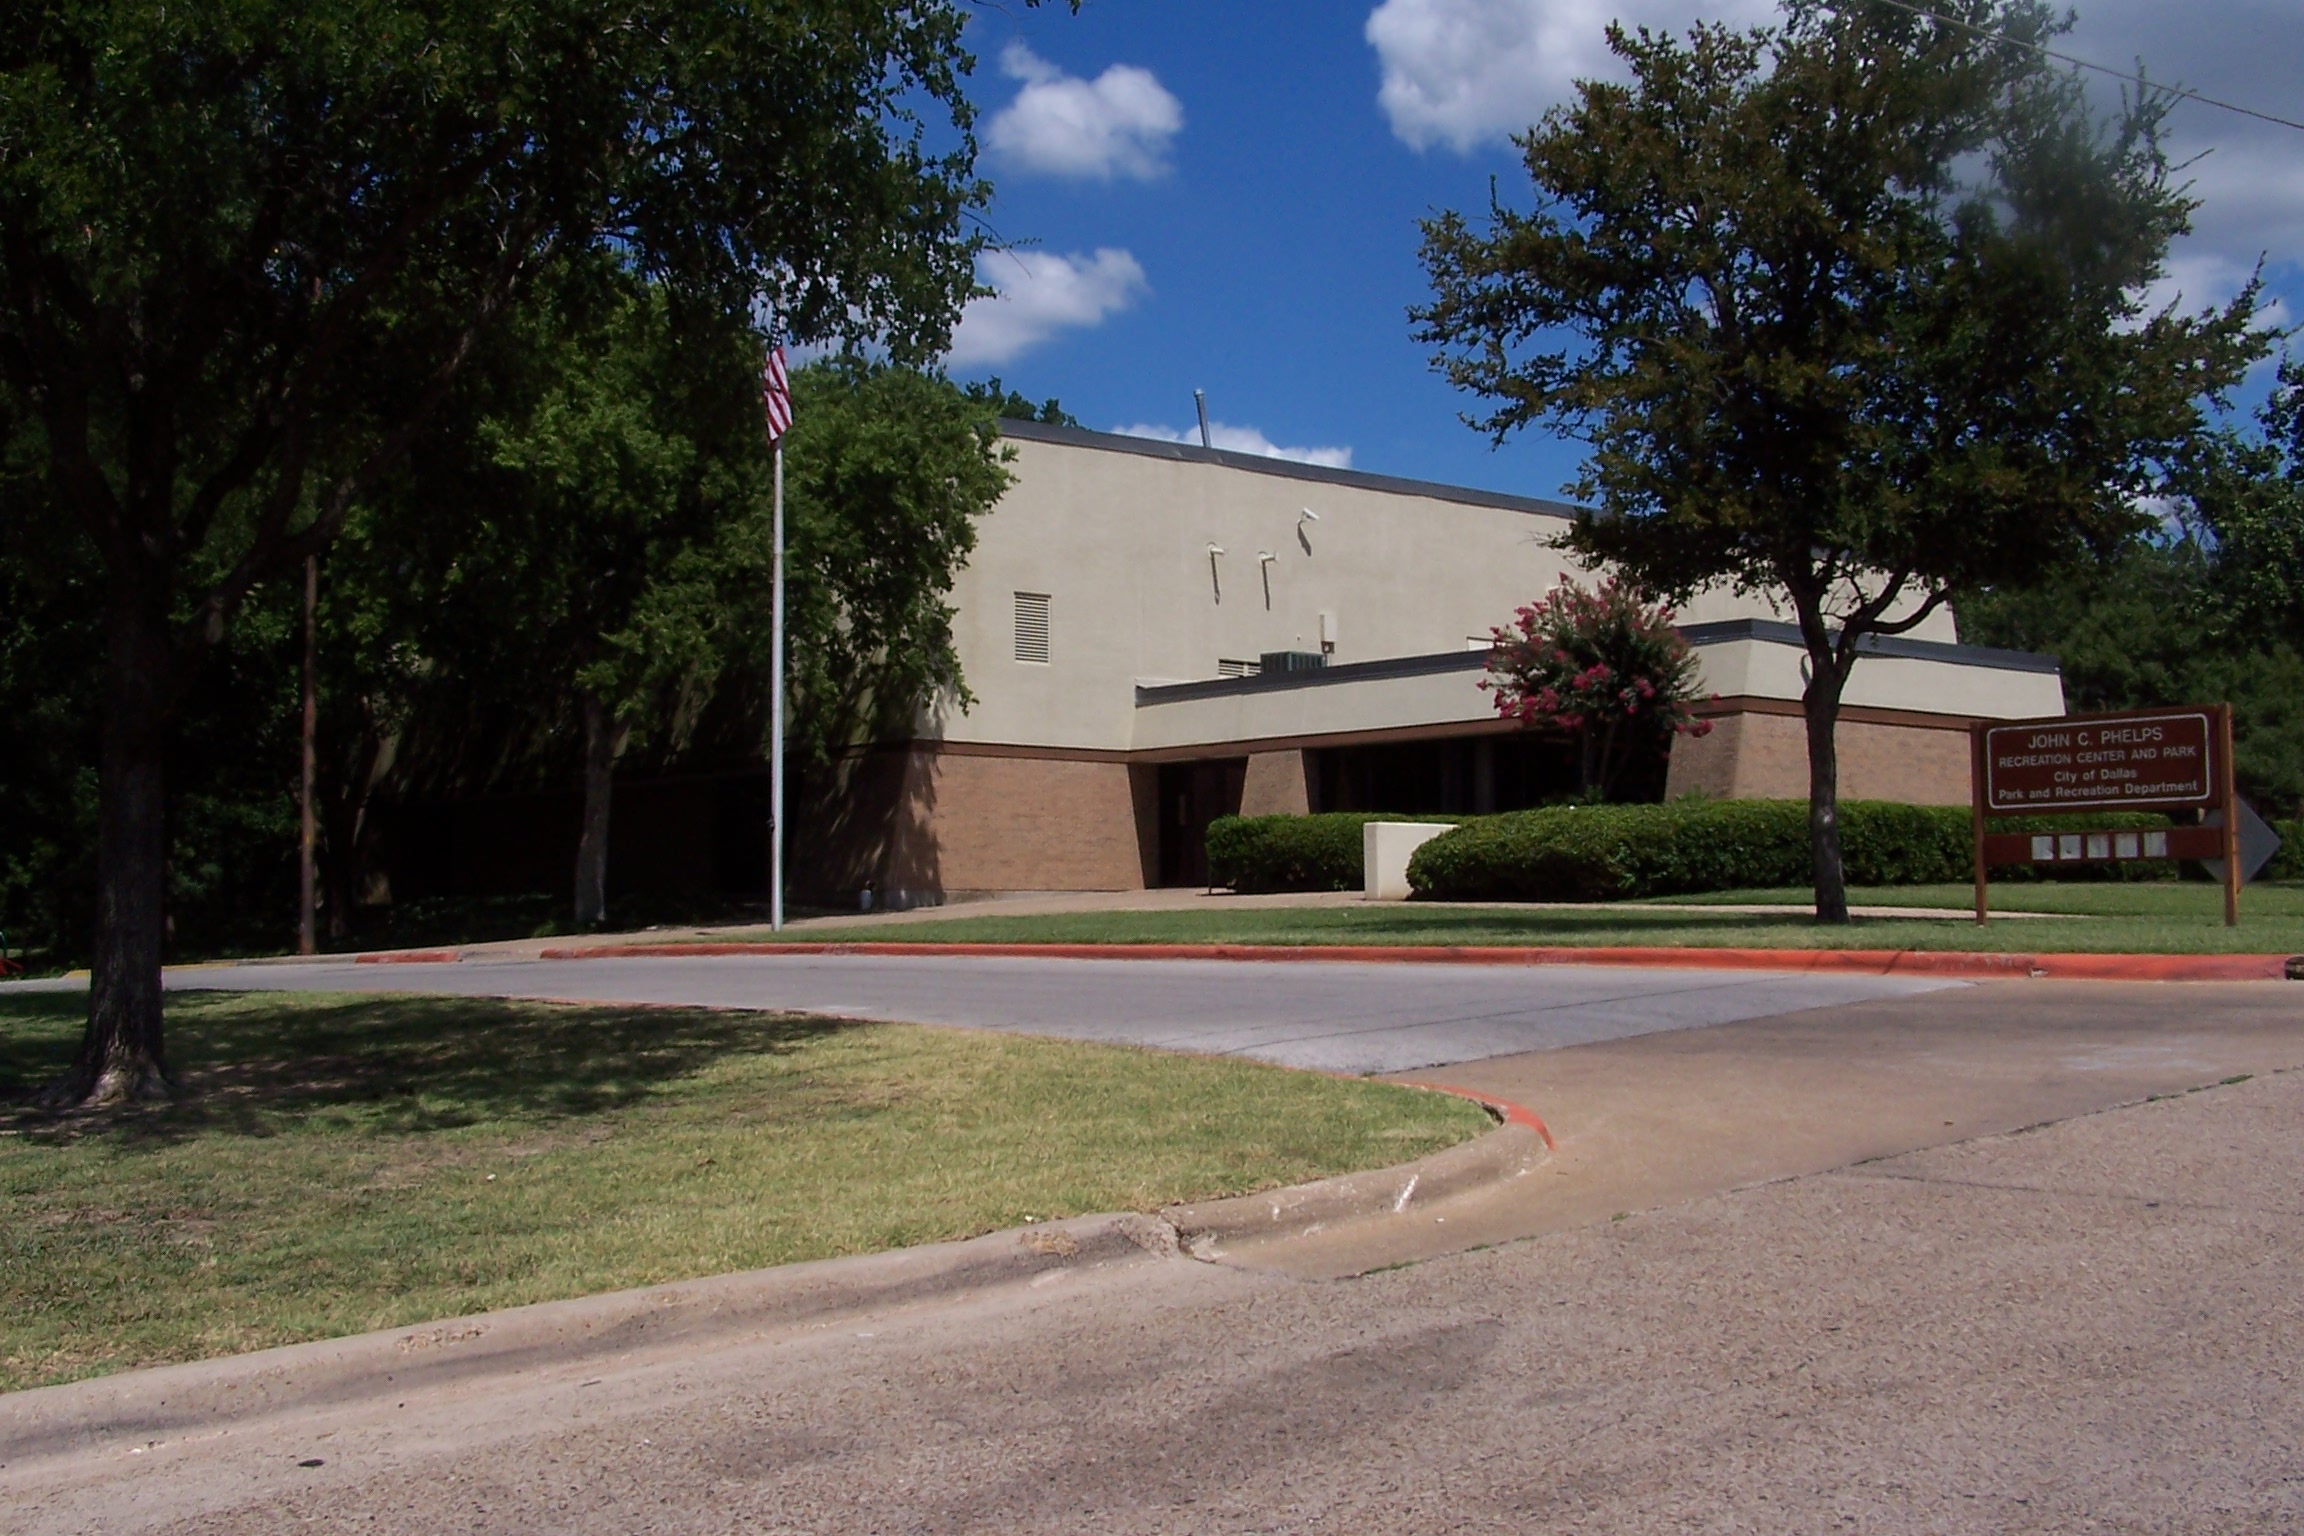 John C Phelps Recreation Center